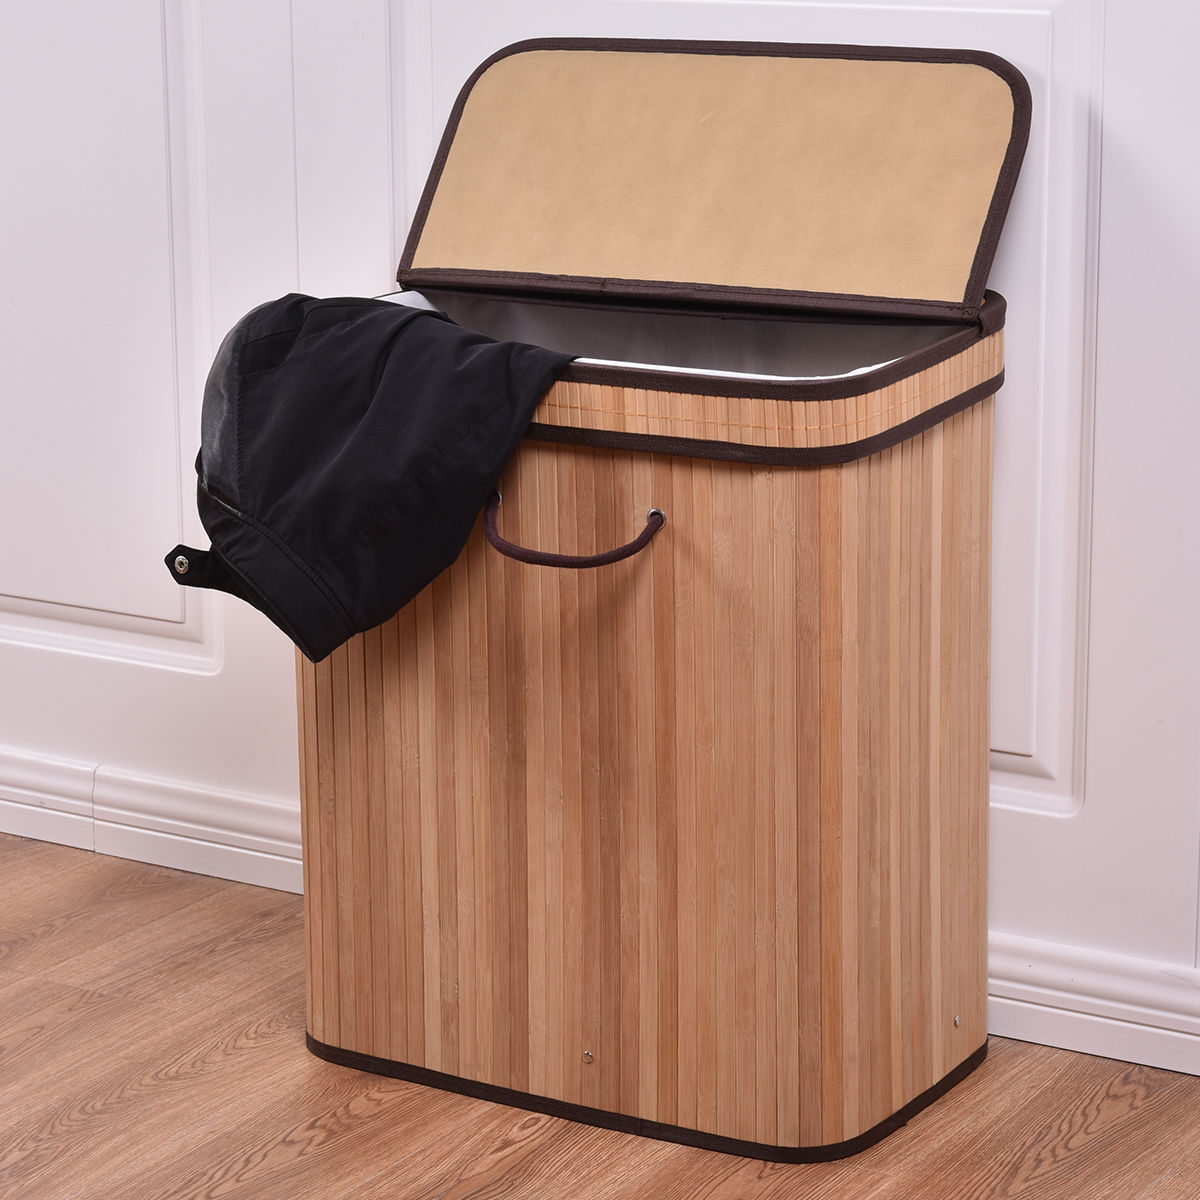 Costway Large Rect Bamboo Hamper Laundry Basket Washing Cloth Storage Bin Bag Lid Nature